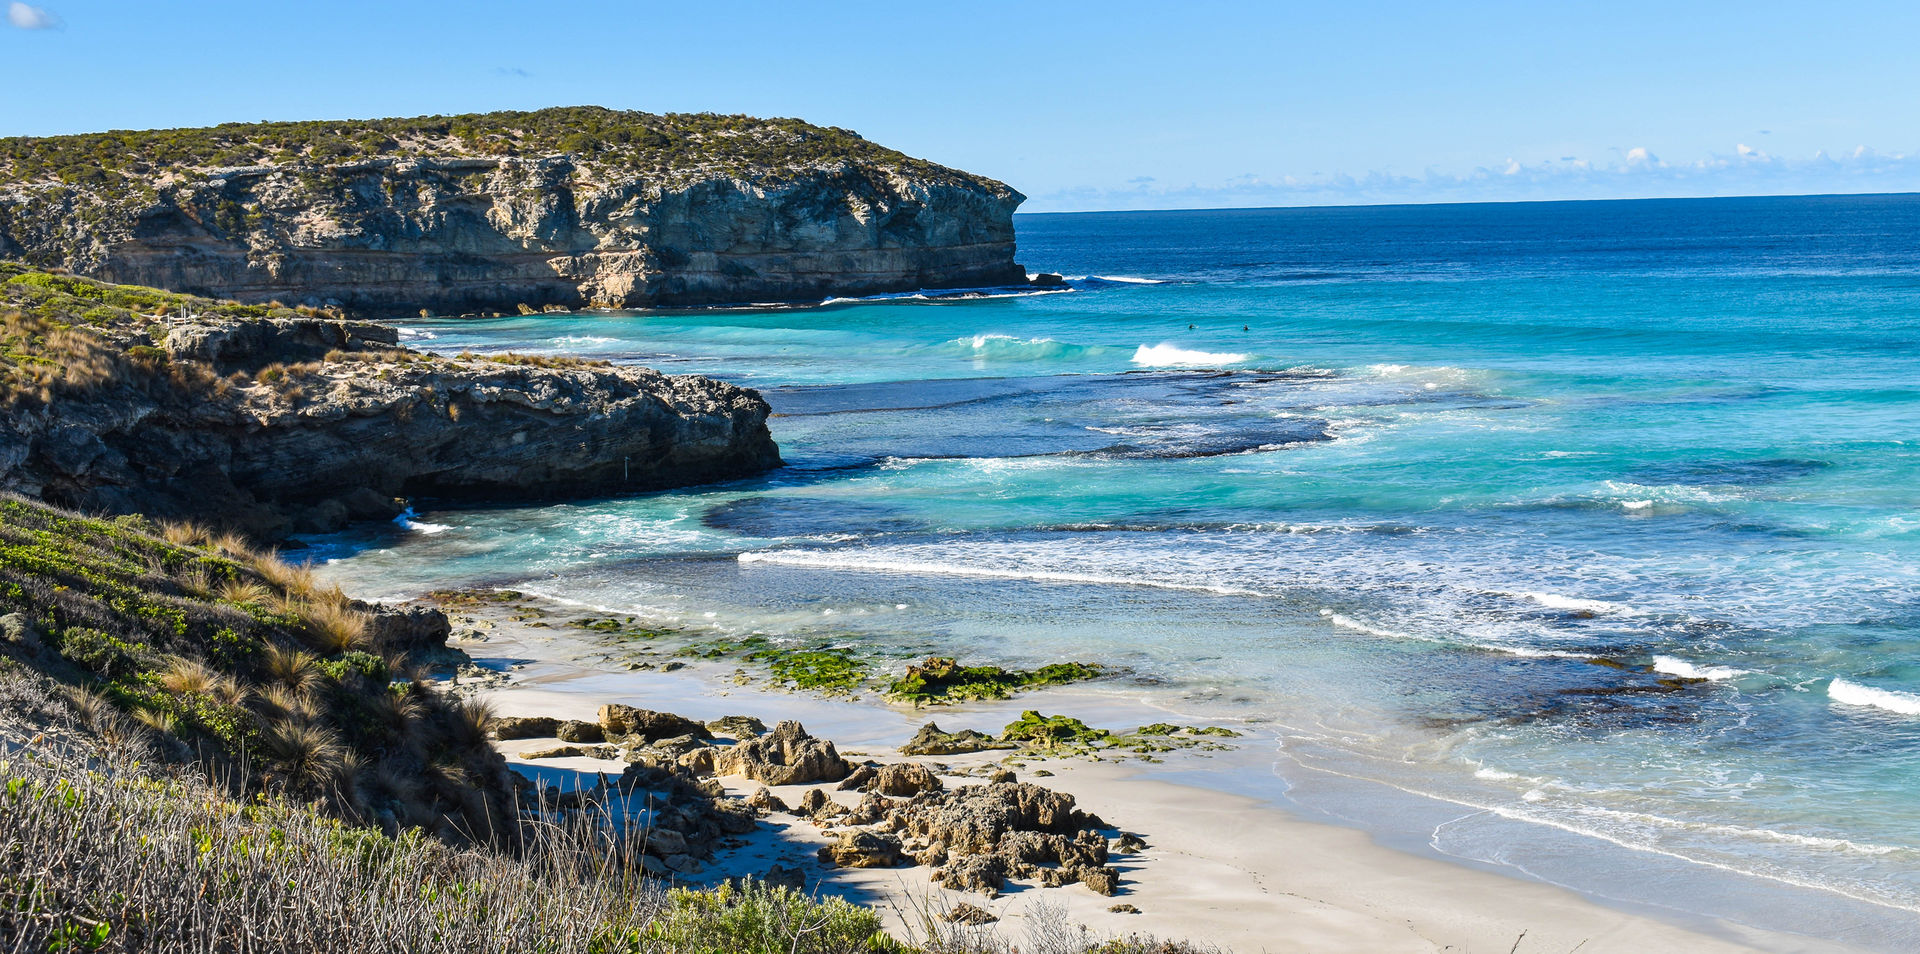 Kangaroo Island & the Great Ocean Road Adventure